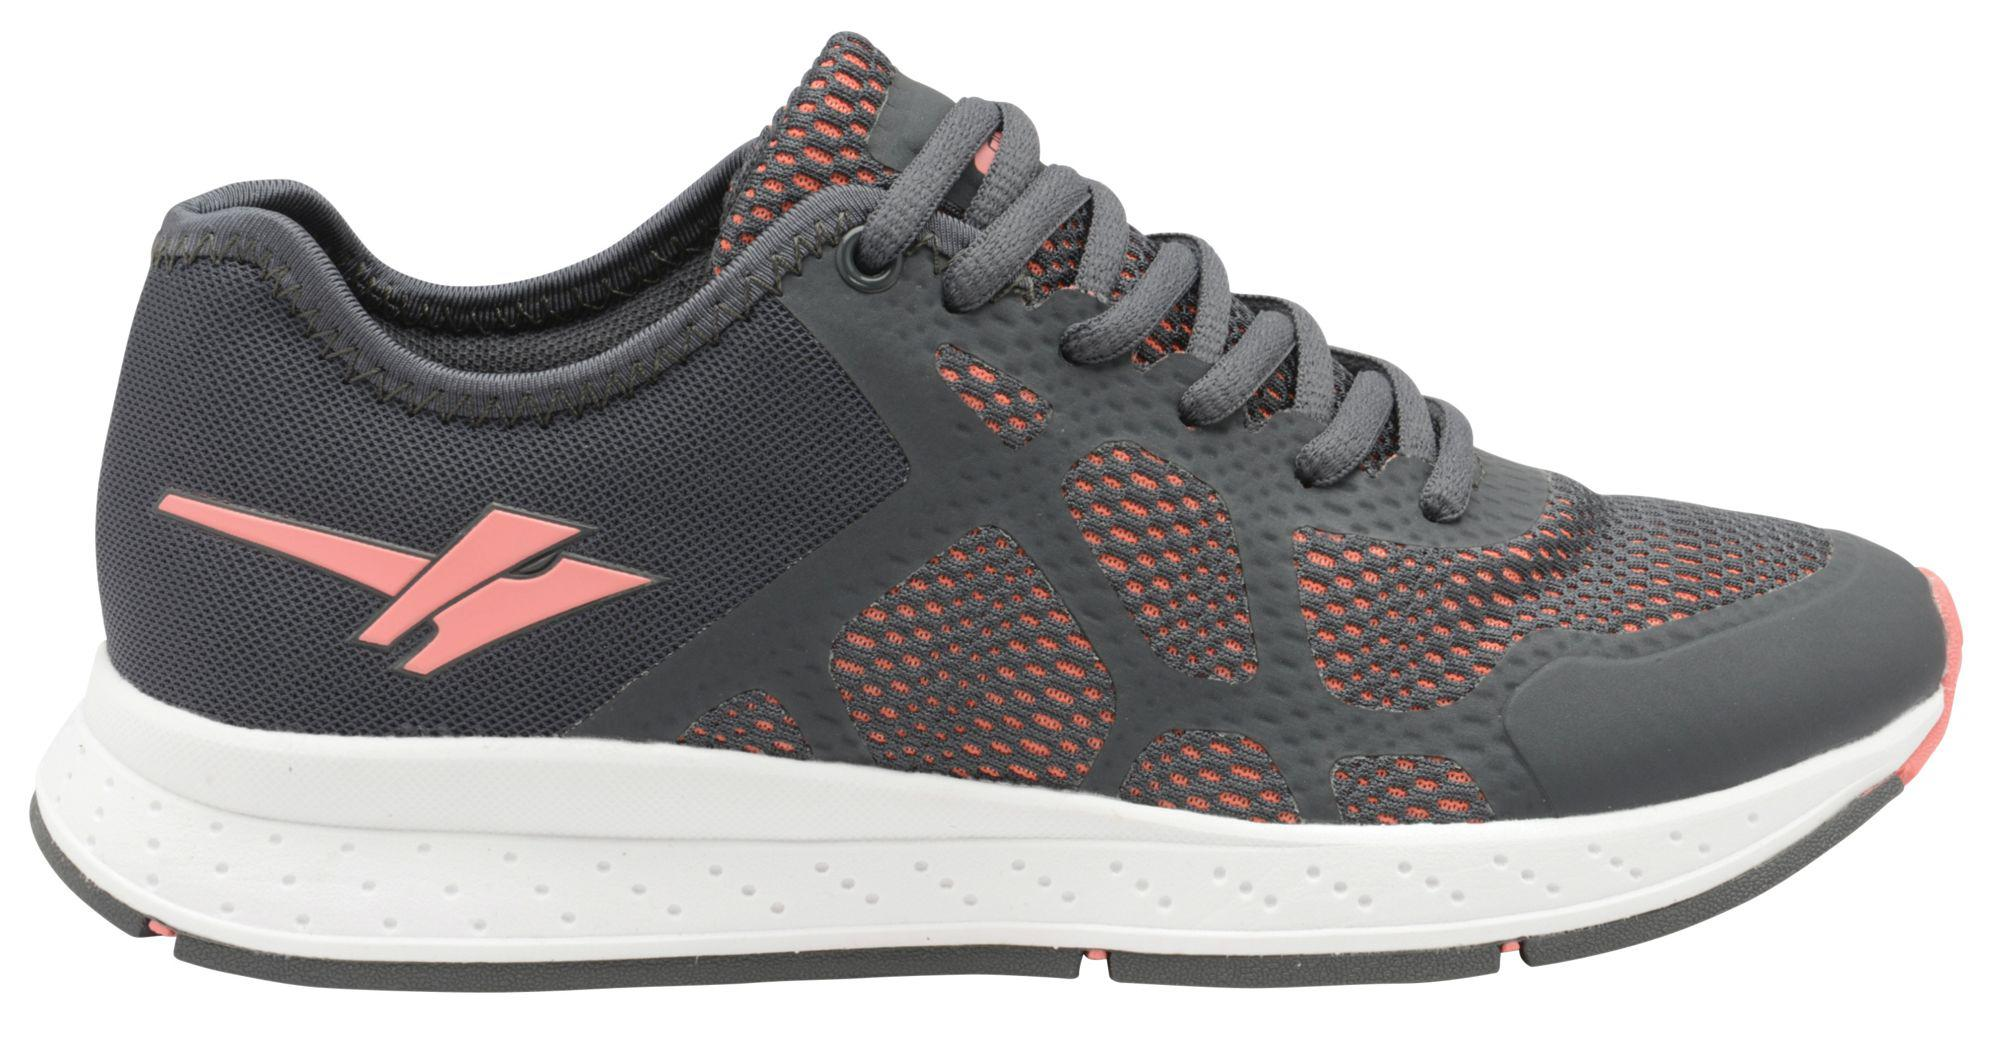 countdown package sale online Grey/Pink 'Triton 2' ladies fitness trainers original online finishline sale online cheap newest k4bzZcq